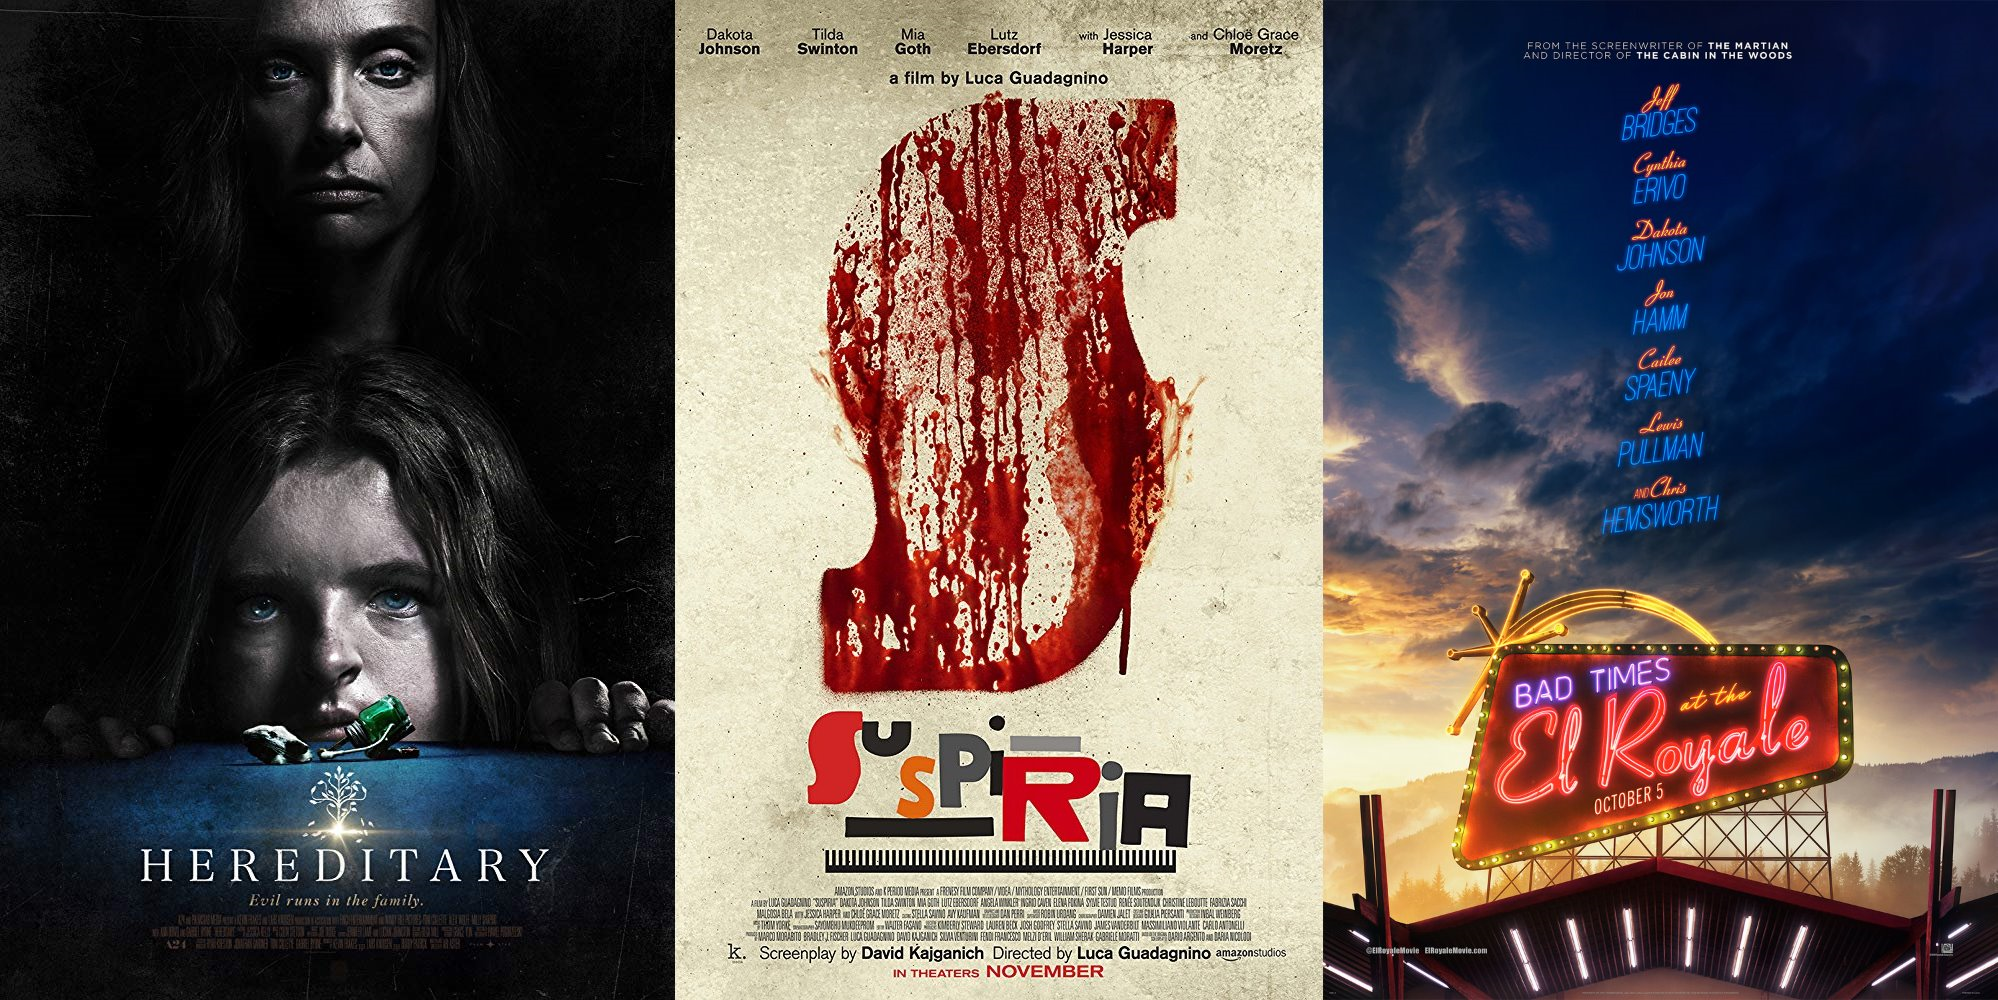 Trailer-Watchin' Wednesday - Suspiria, Bad Times at the El Royale, and Hereditary